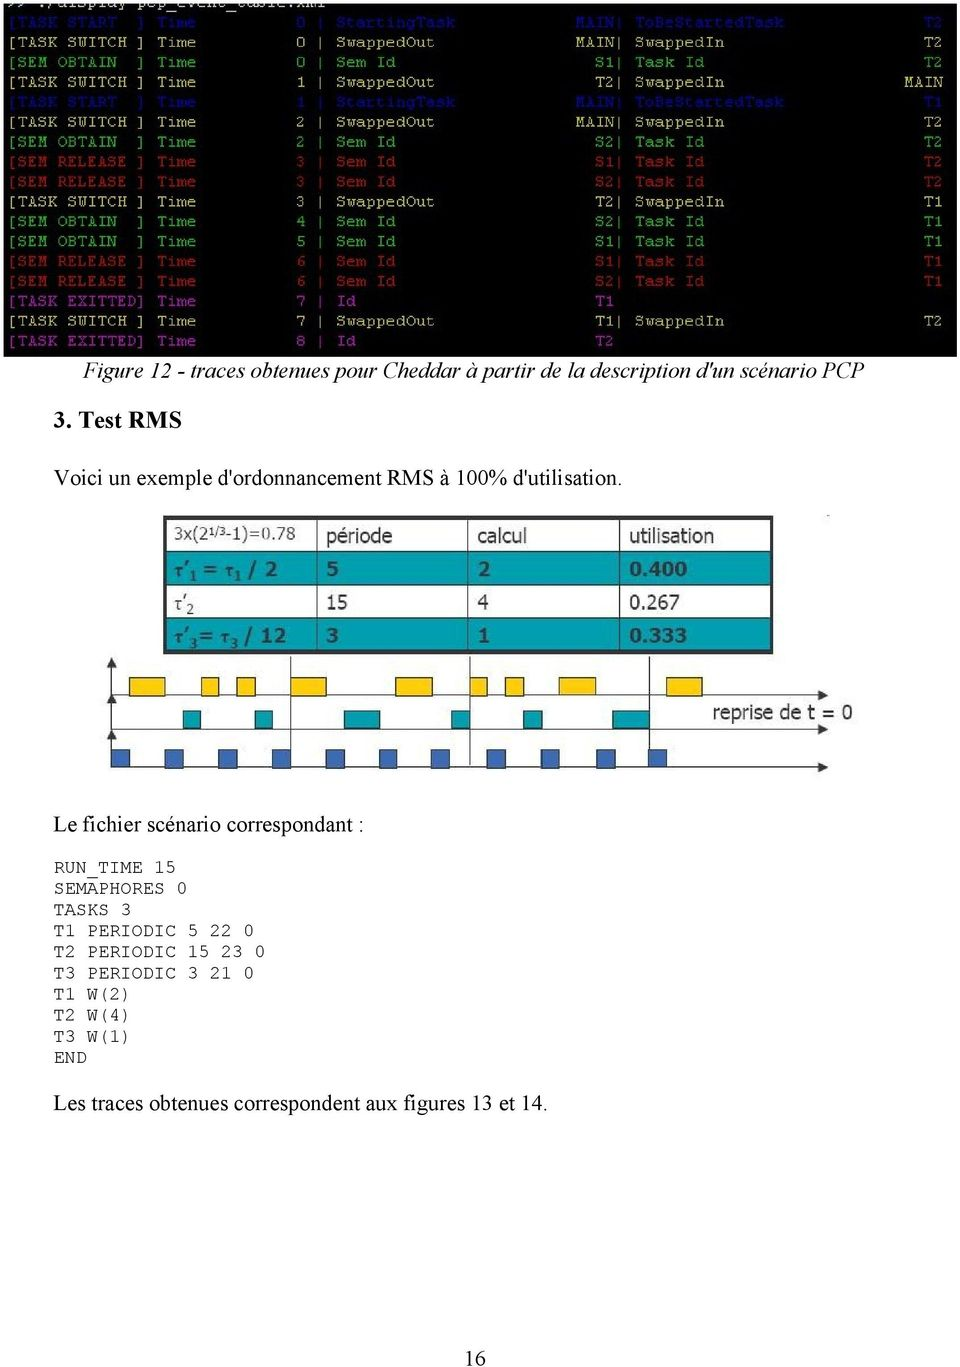 Le fichier scénario correspondant : RUN_TIME 15 SEMAPHORES 0 TASKS 3 T1 PERIODIC 5 22 0 T2